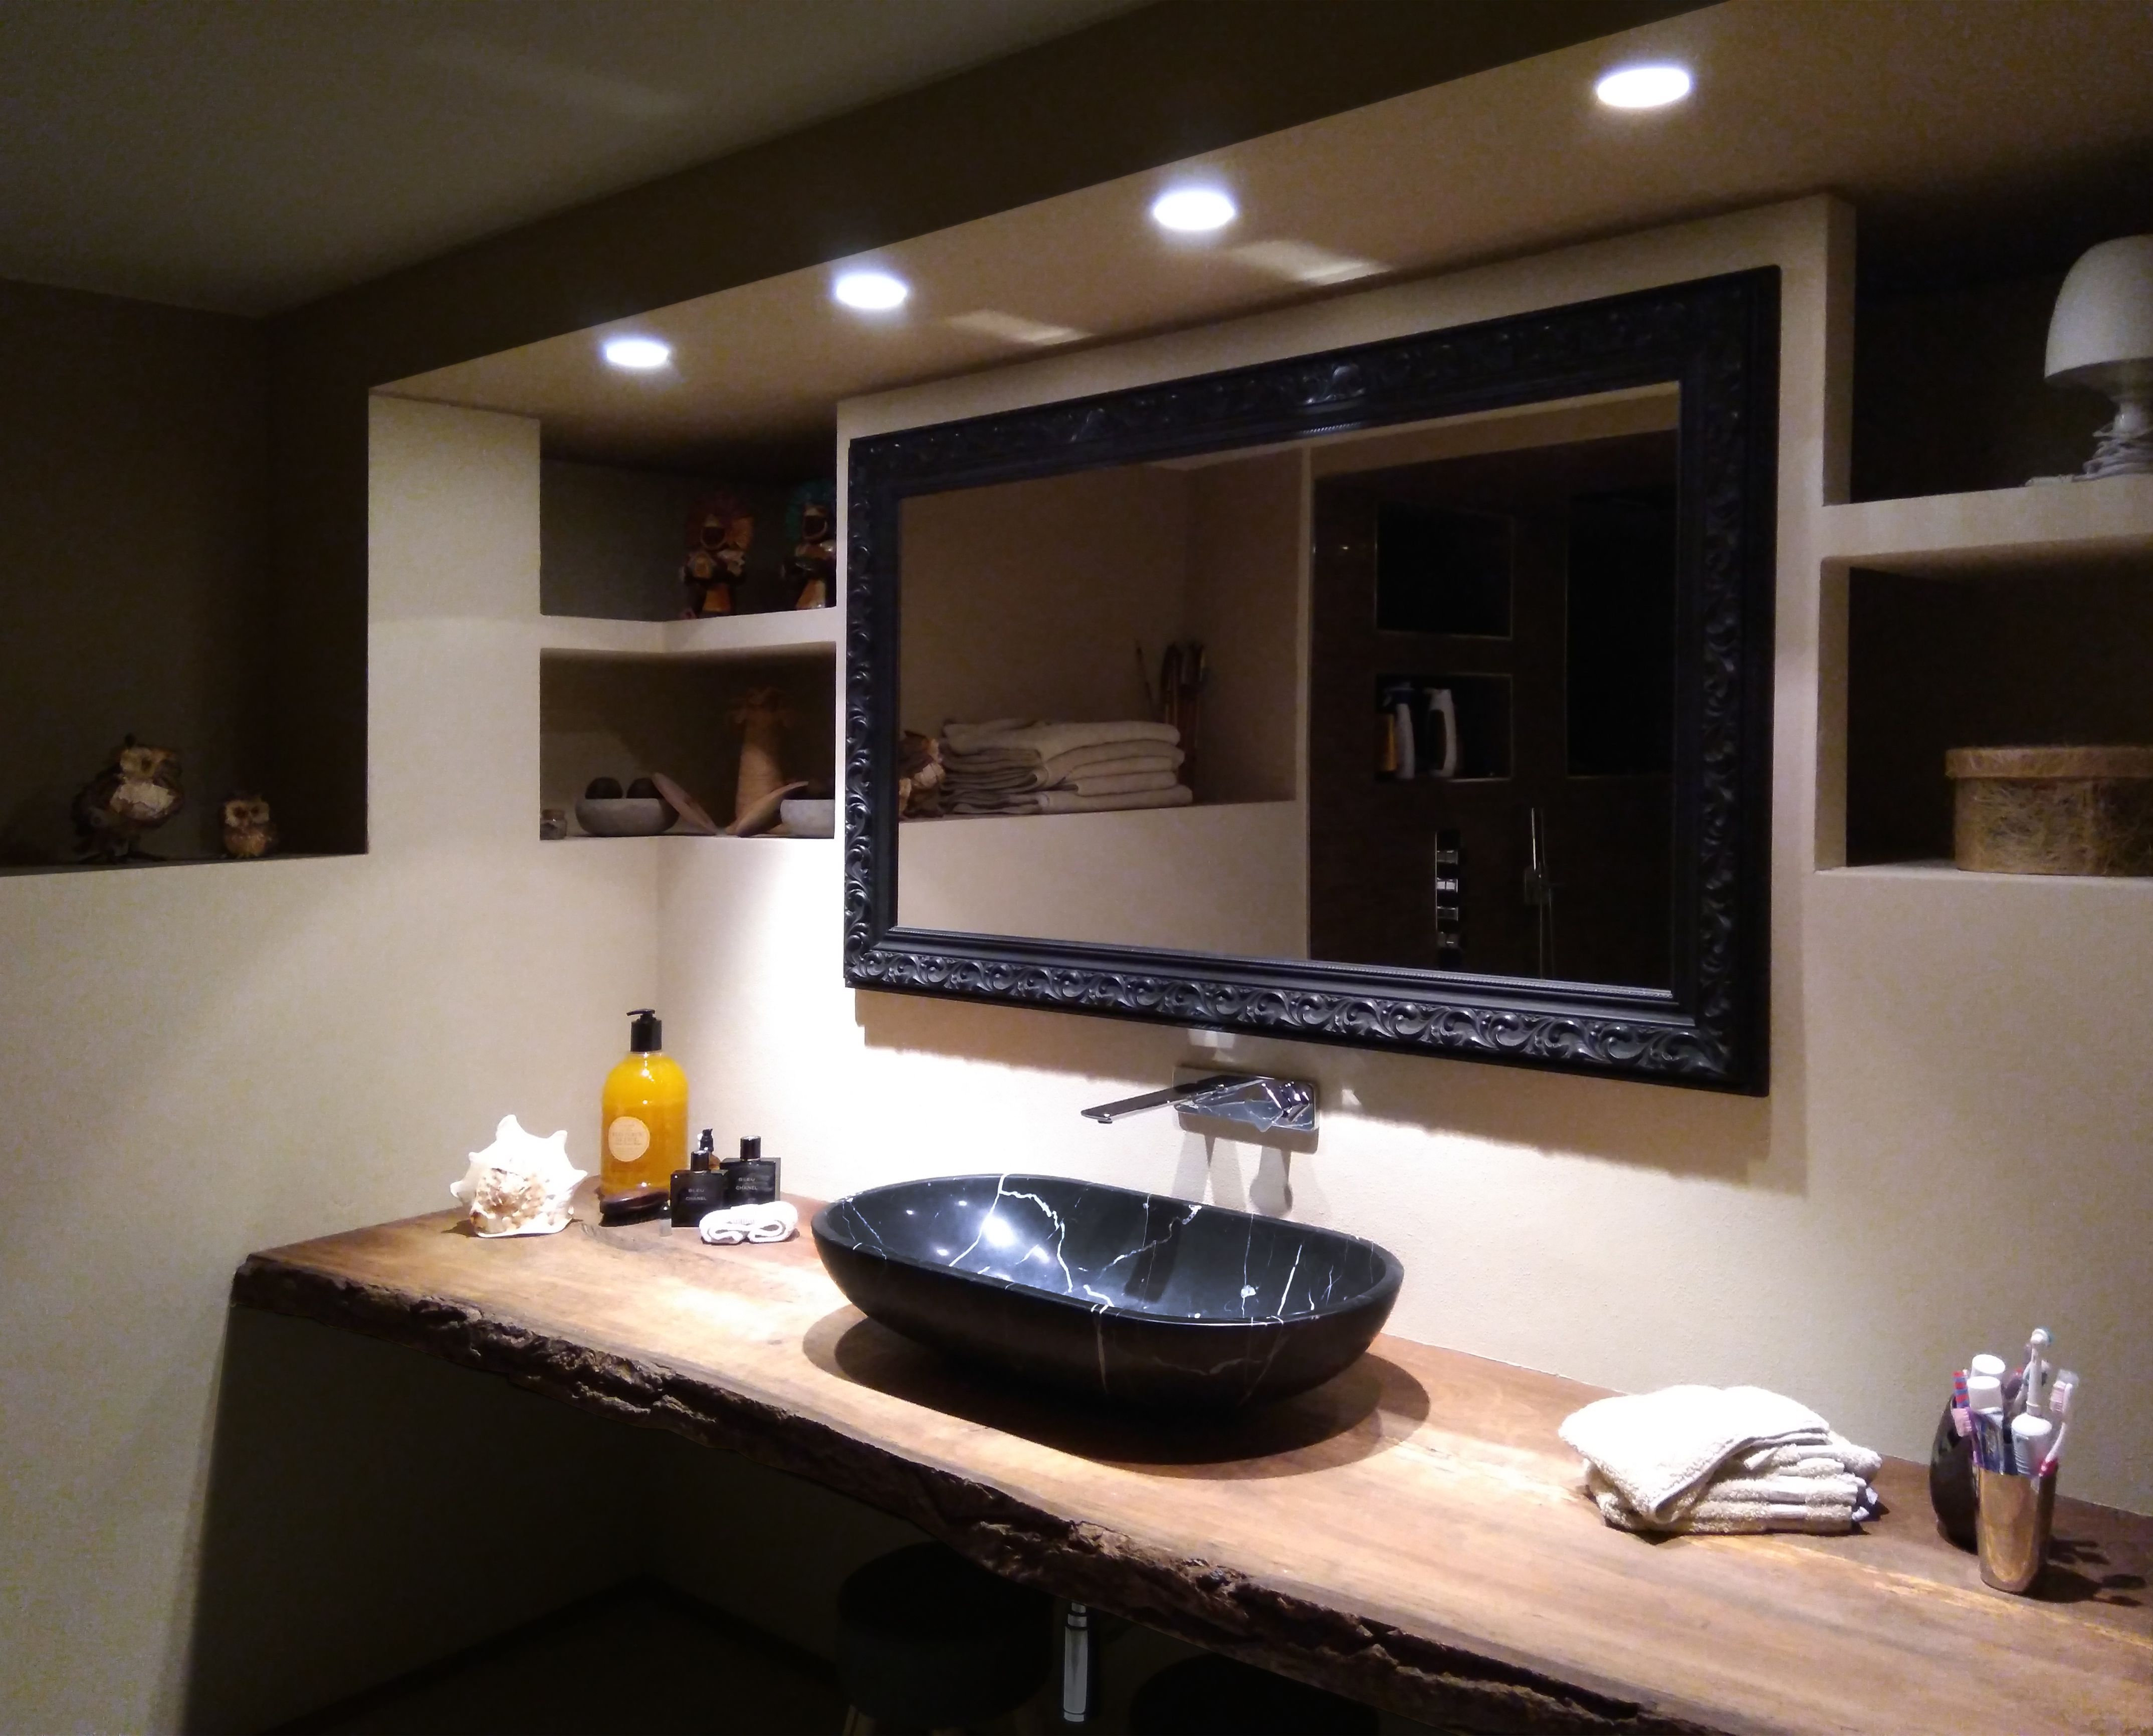 Four Downlight Spot To Lighting The Black Marble Sink And The Rough Wooden Top Plane Lightingand Bathroom Light Marble Sinks Wooden Tops Marble Bathroom